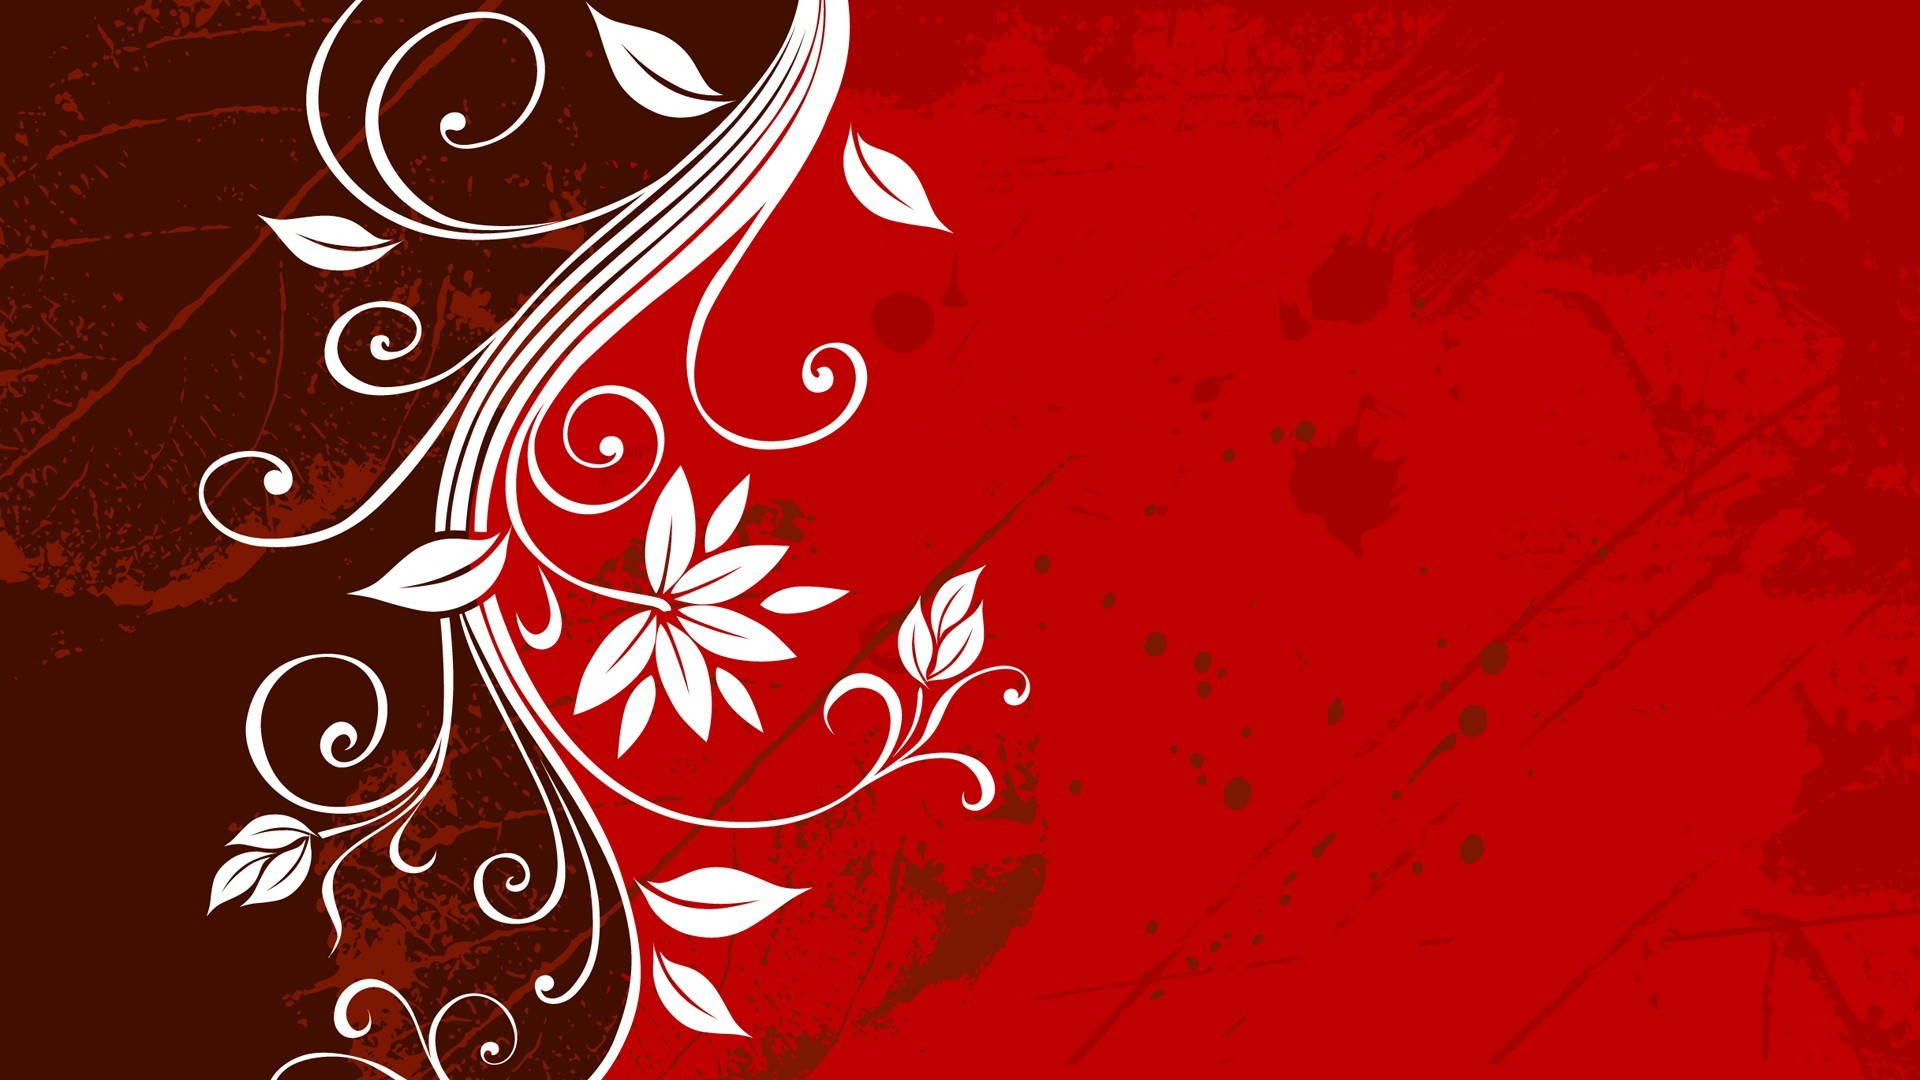 Vector Graphics Design Background Hd At Getdrawings Com Free For